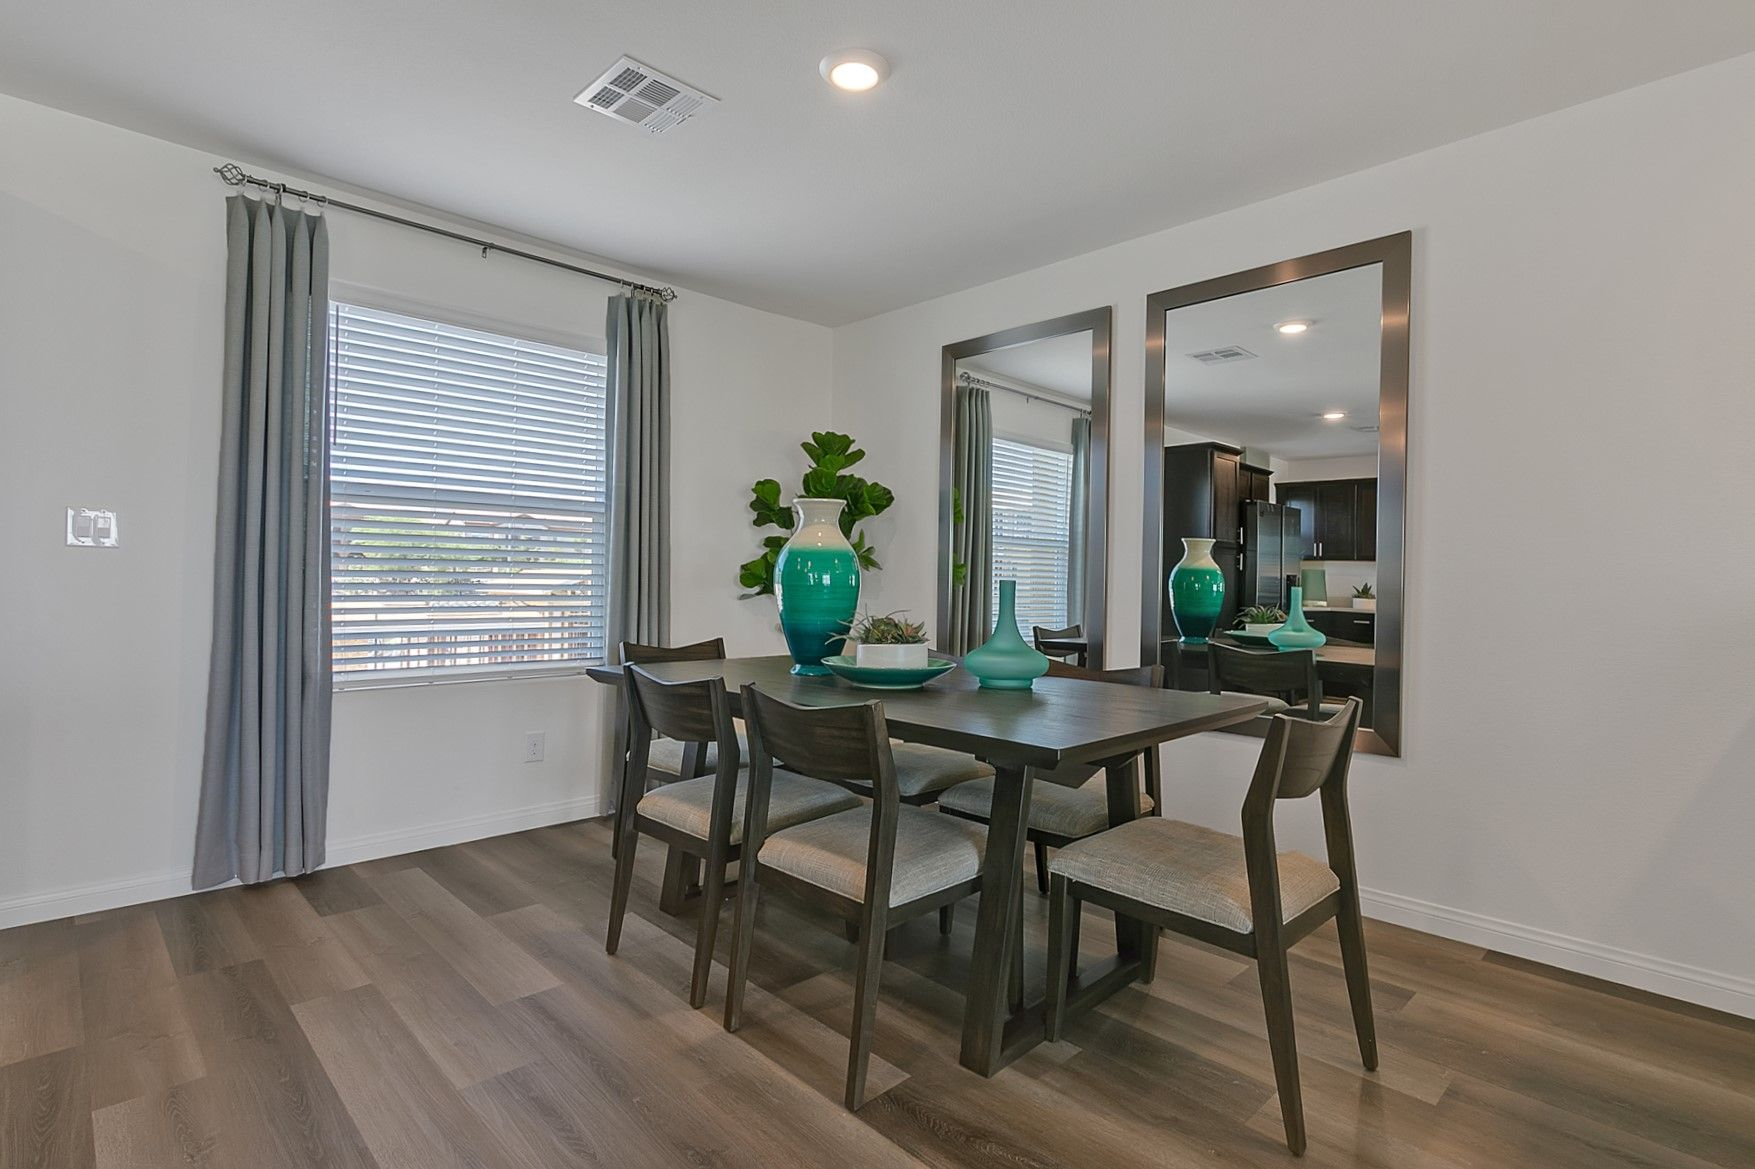 Living Area featured in the Plan 402 By Touchstone Living in Las Vegas, NV